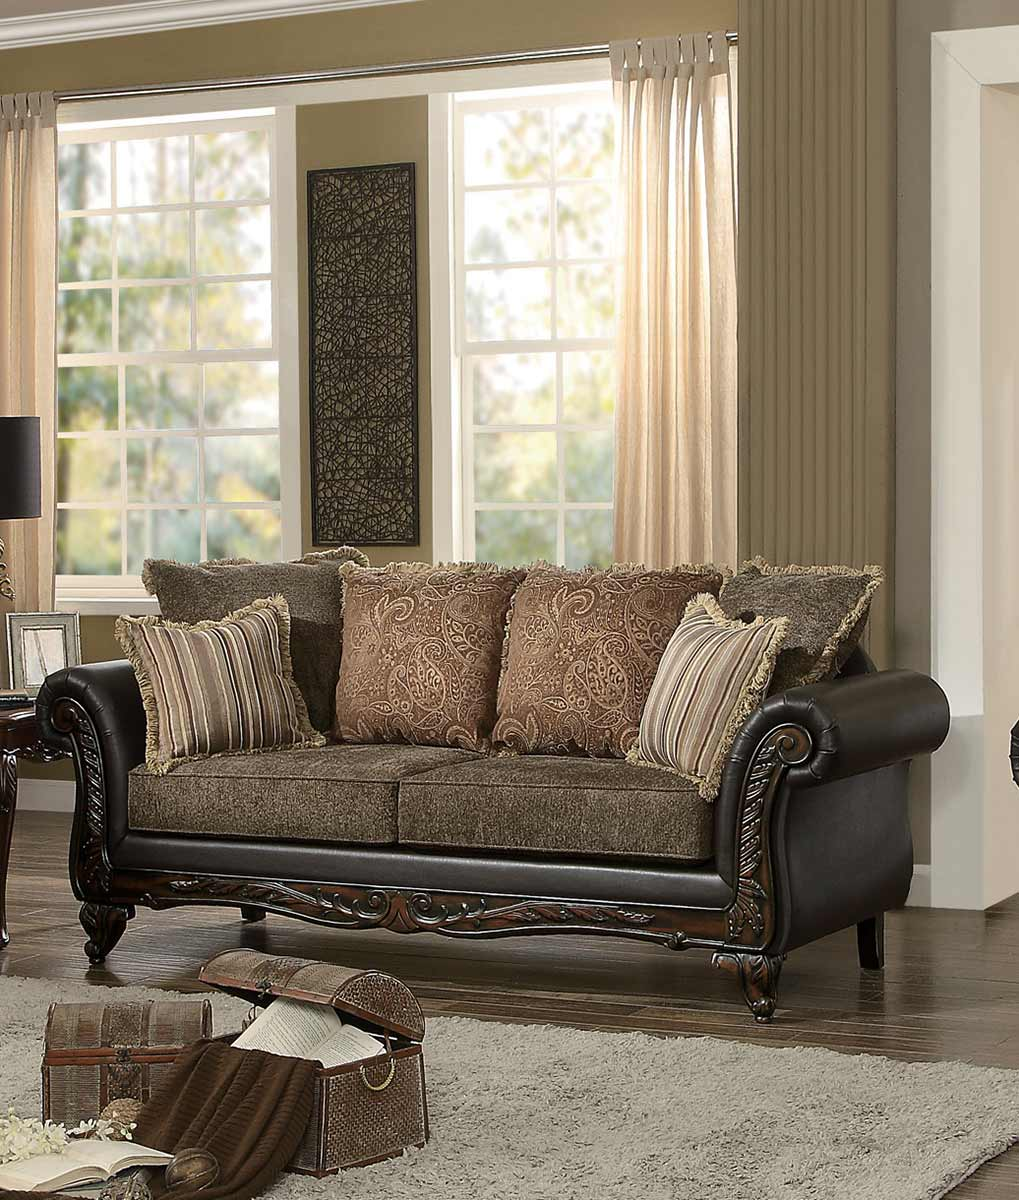 Homelegance Thibodaux Sofa - Brown Fabric/Dark Brown Bi-Cast Vinyl